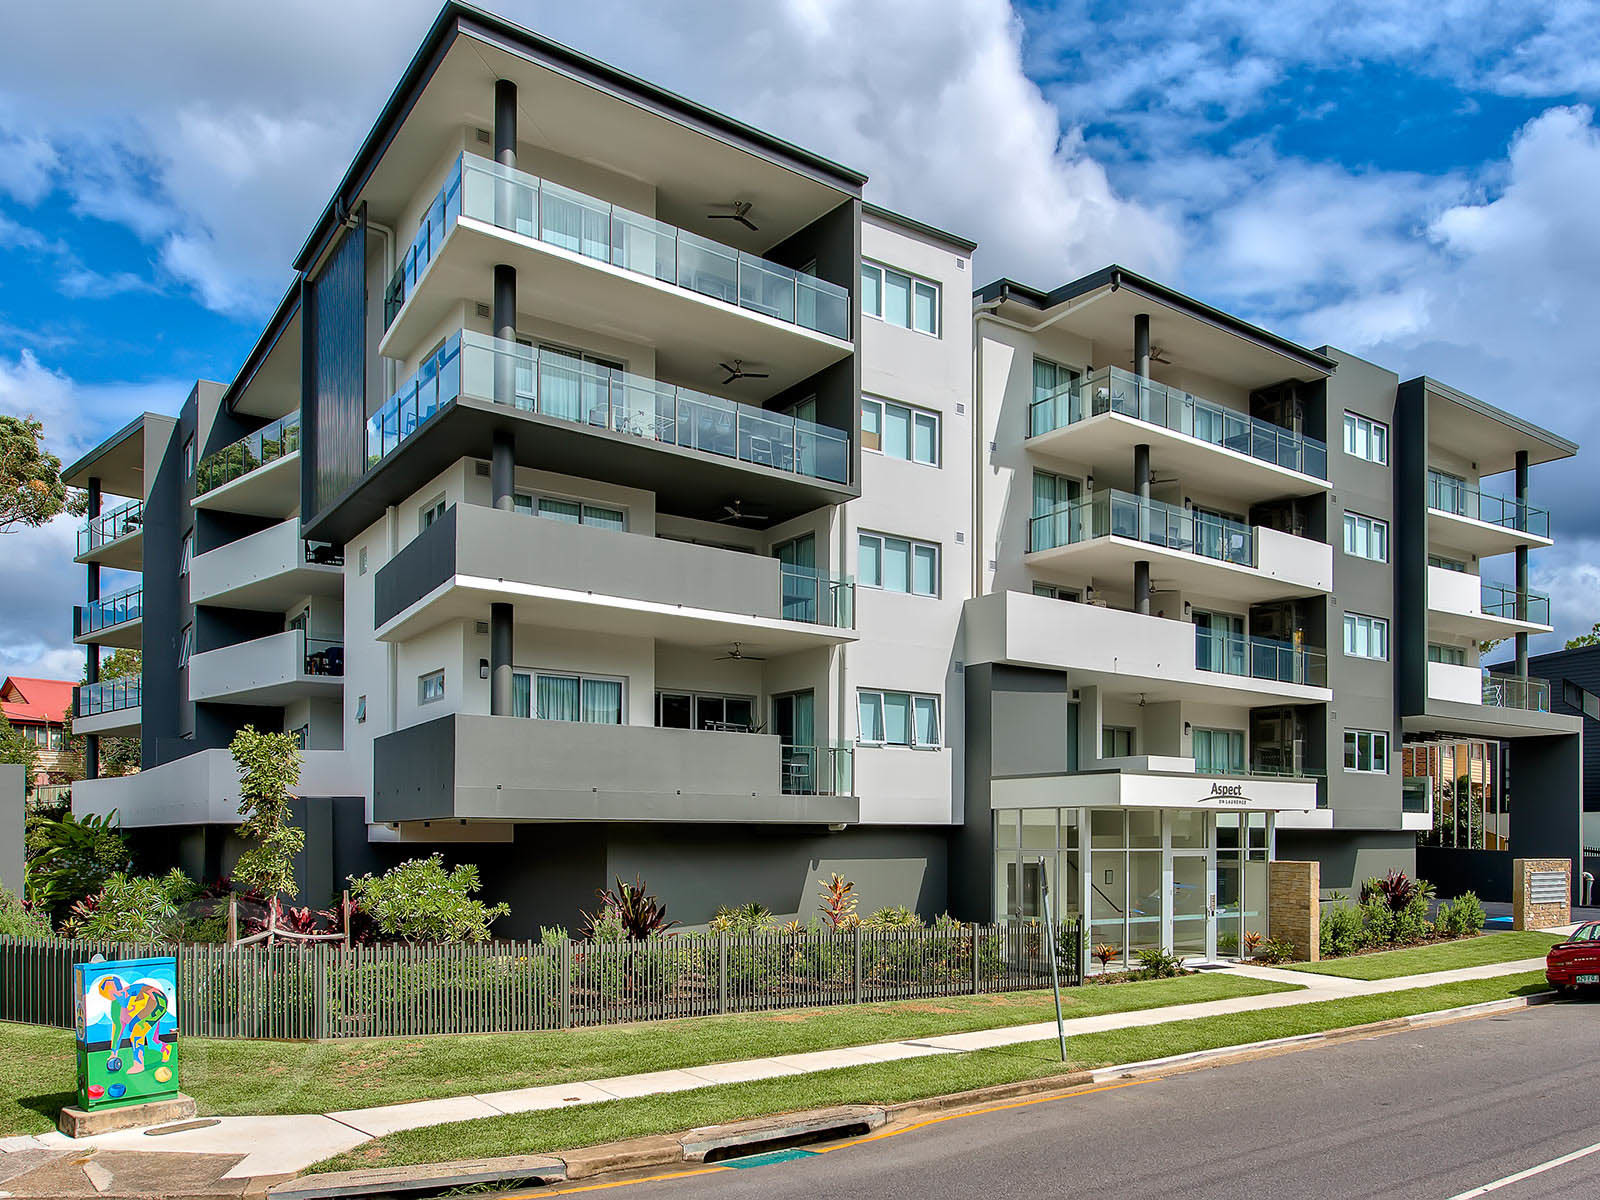 39/2 Laurence Street St Lucia